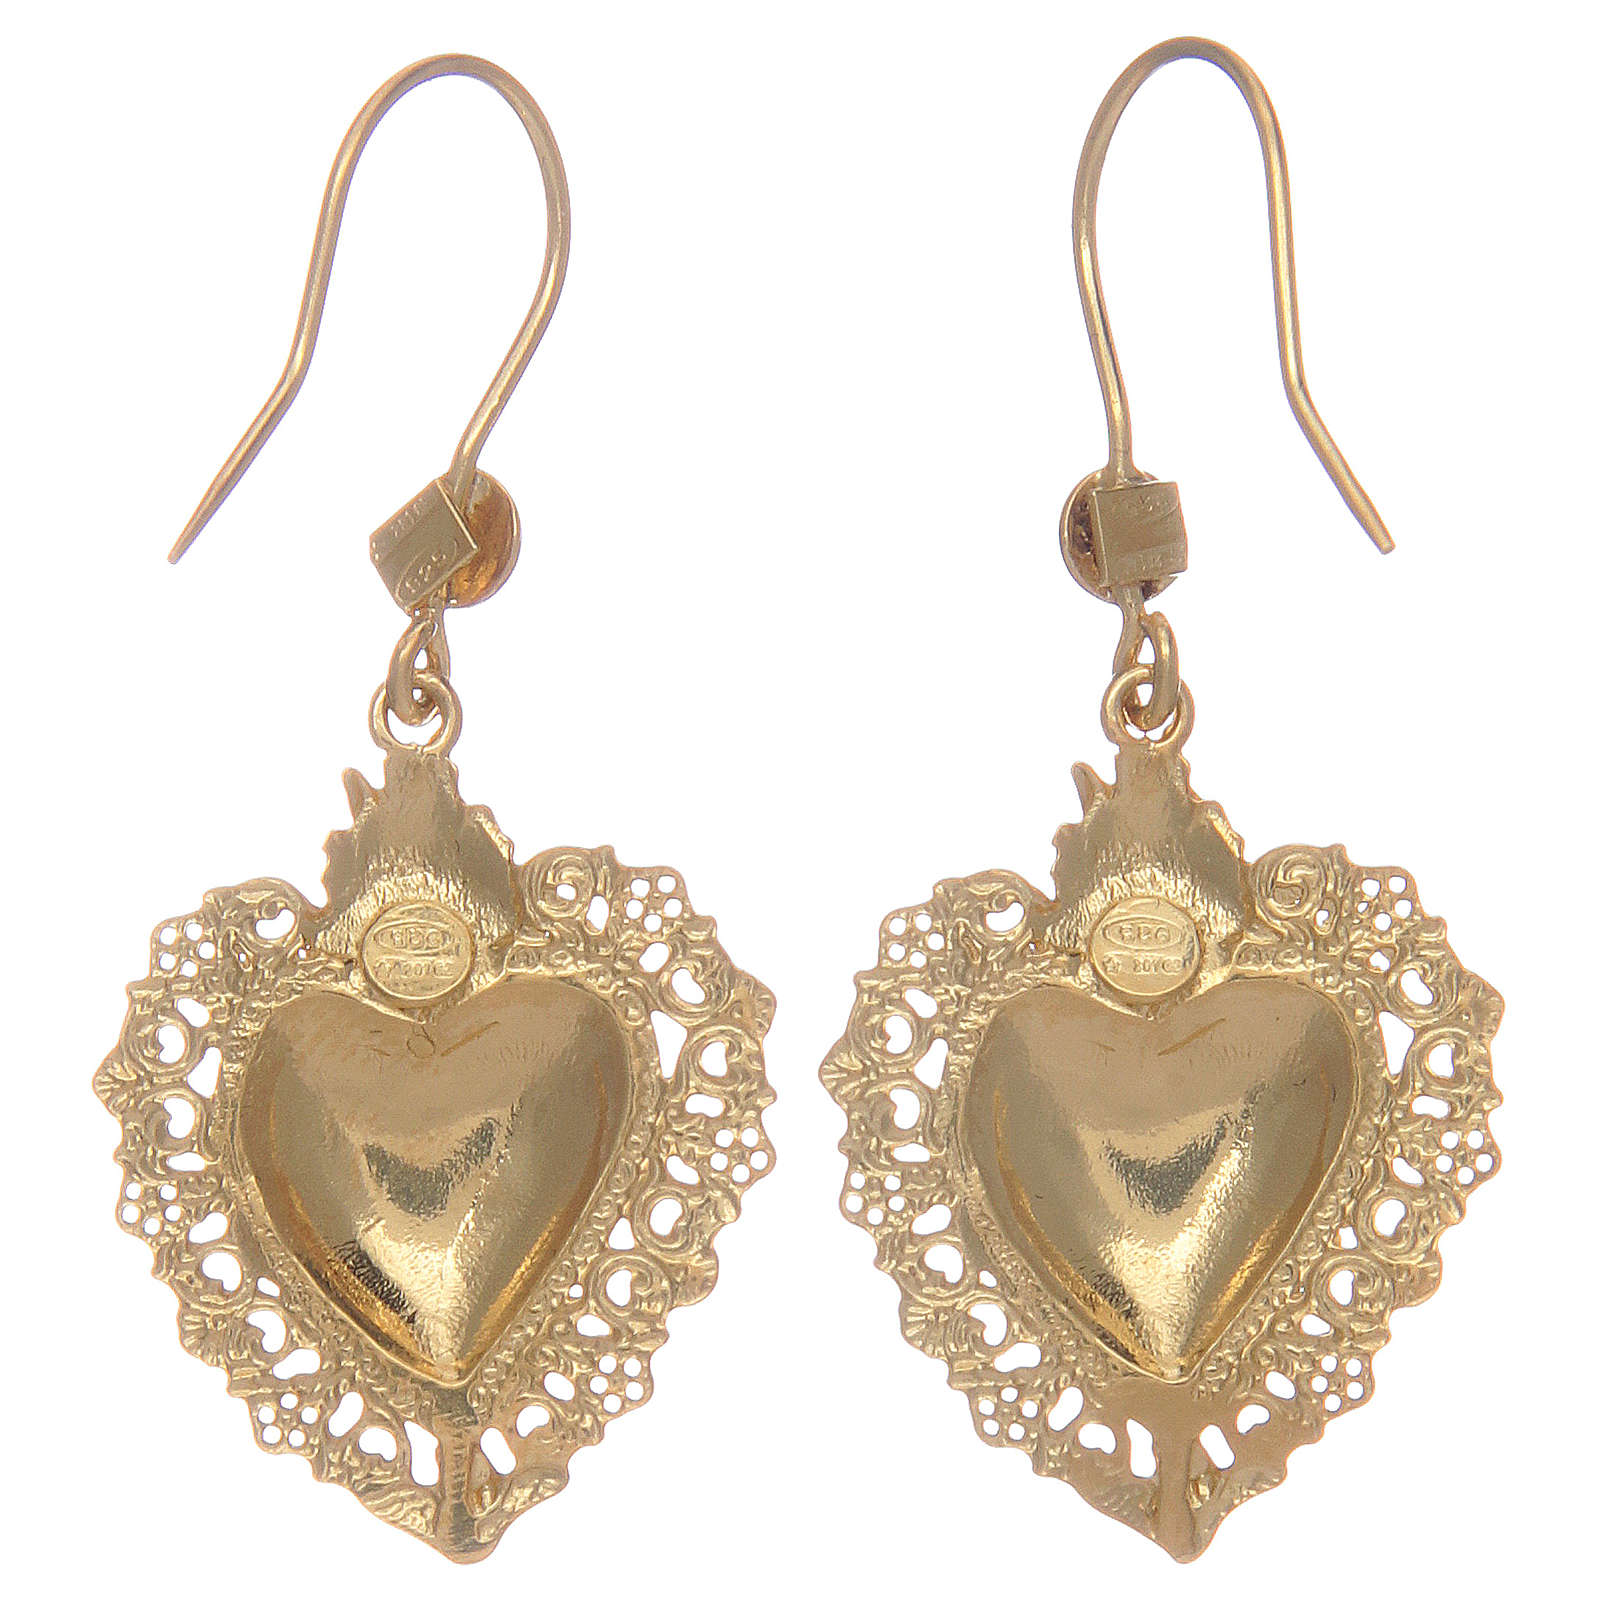 925 sterling silver pendant earrings finished in gold with votive heart 4